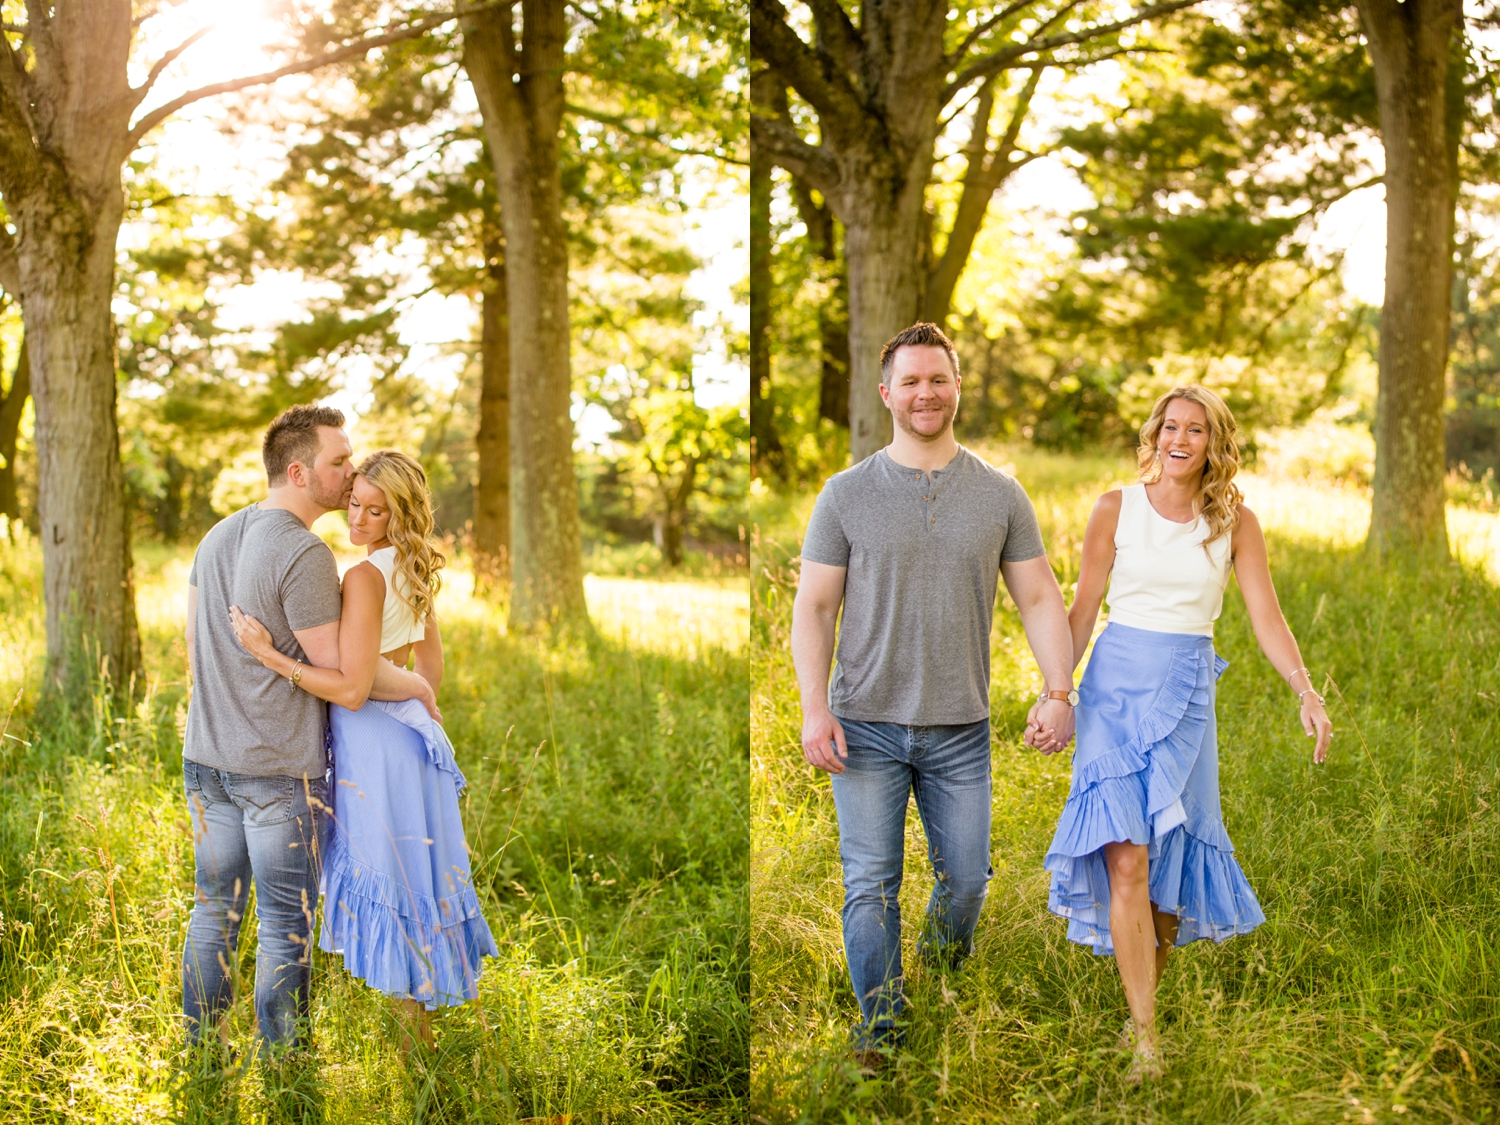 pittsburgh engagement photographer, succop nature park wedding, succop nature park engagement photos, pittsburgh wedding photographer